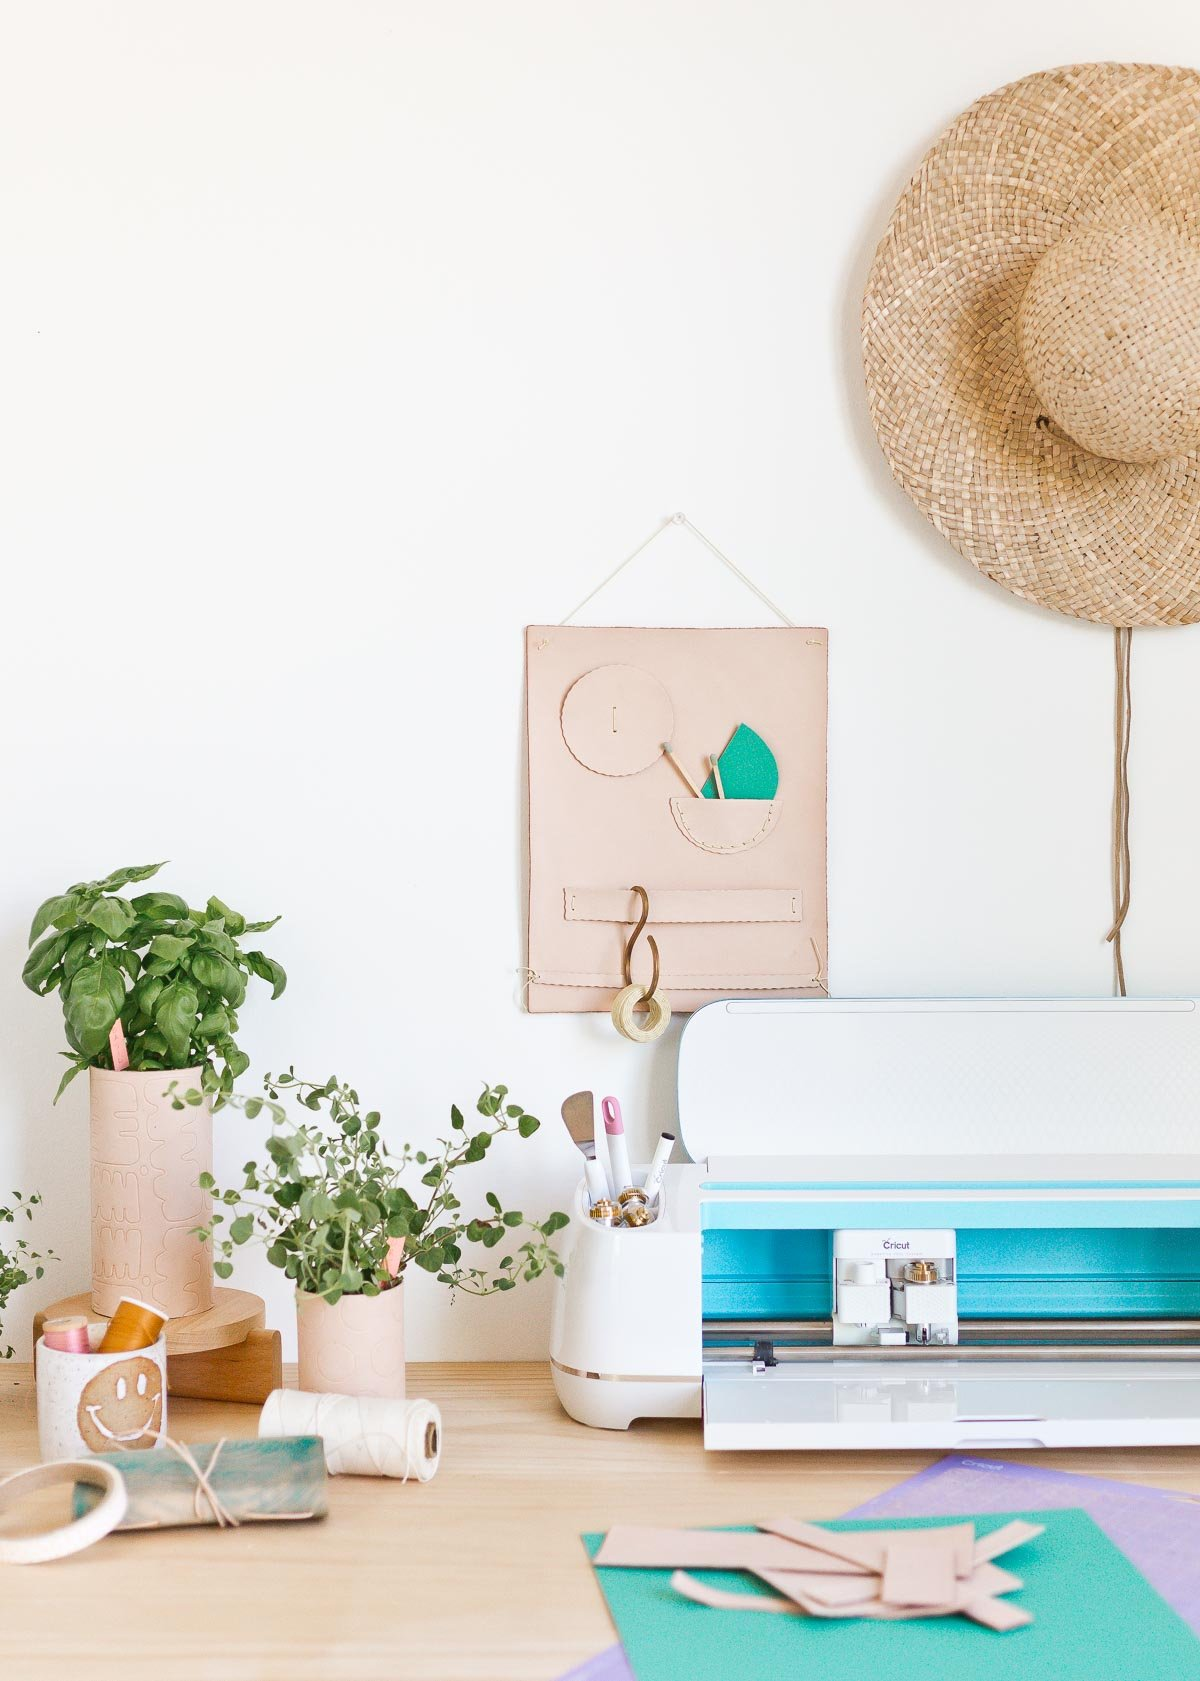 3 Cool (DIY) Things to Make with Leather Right Now. Wanna make something with leather? Try these unique DIY leather ideas that you cane embellish with a Cricut Maker with embossed patterns and more. #leather #diy #leatherdiy #homedecor #workspace #wallorganizer